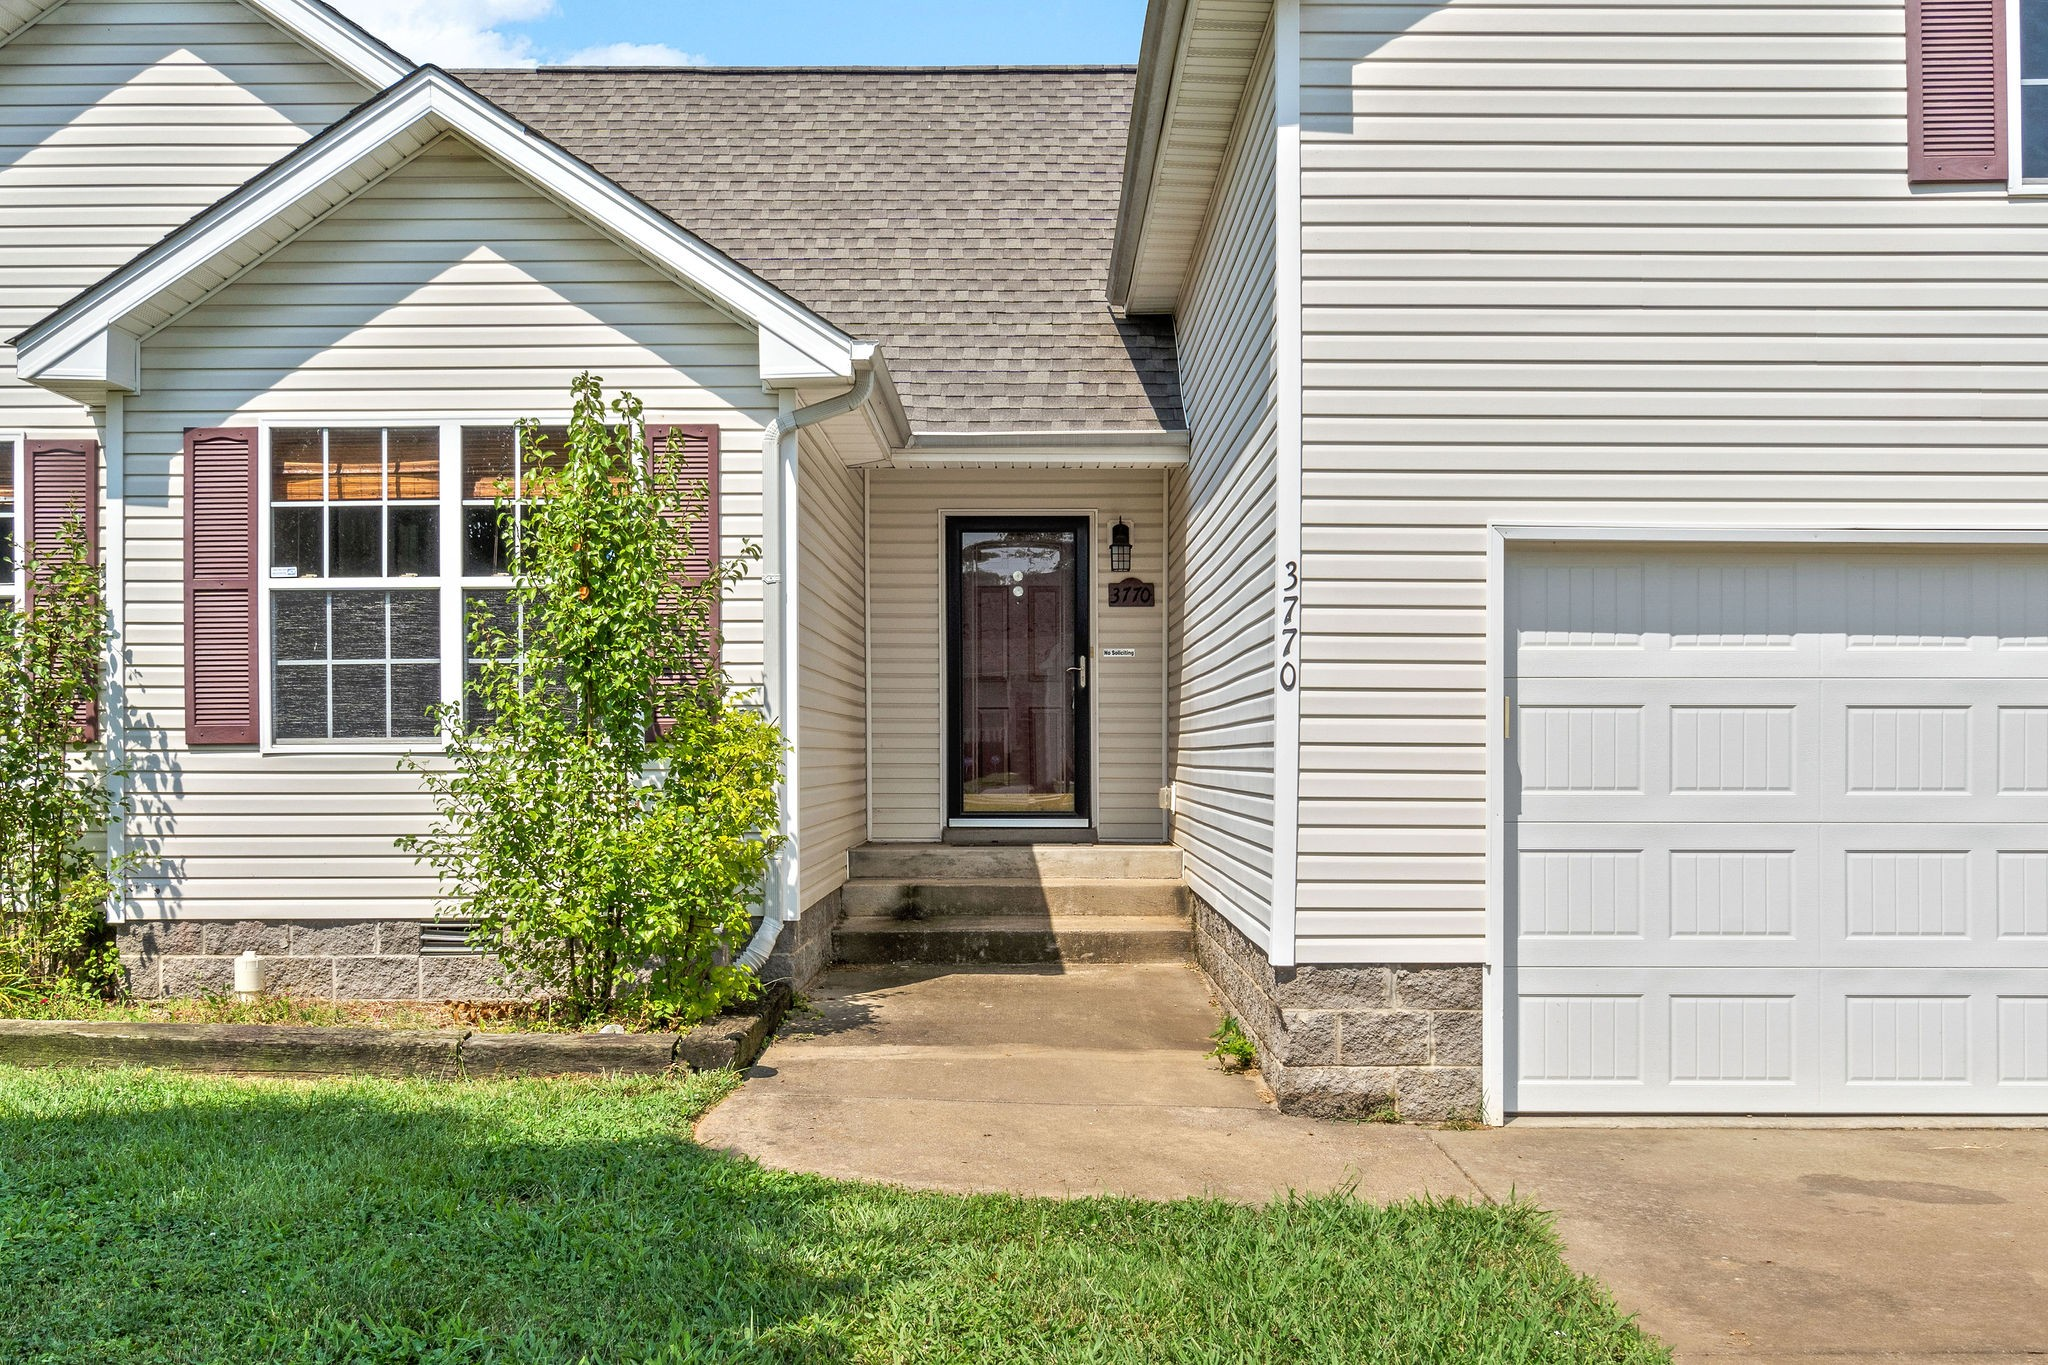 3770 Bret Dr Property Photo - Clarksville, TN real estate listing